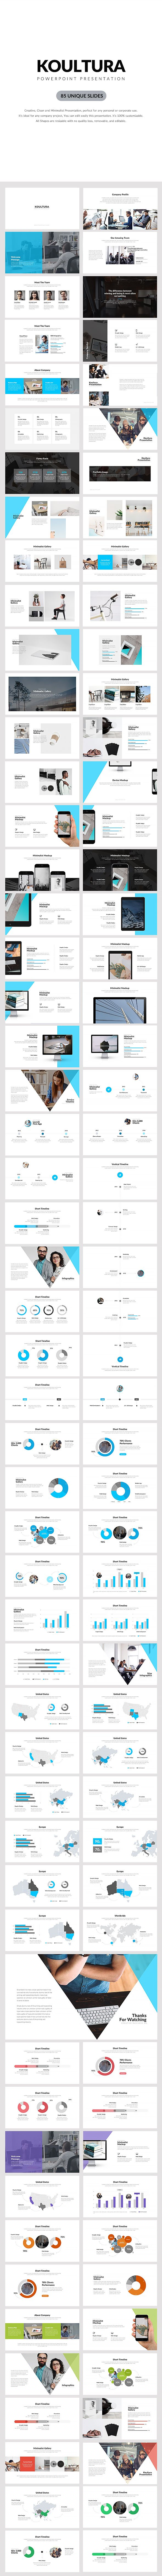 Koultura Powerpoint Presentation — Powerpoint PPT #pptx #customer • Available here ➝ https://graphicriver.net/item/koultura-powerpoint-presentation/20519758?ref=pxcr